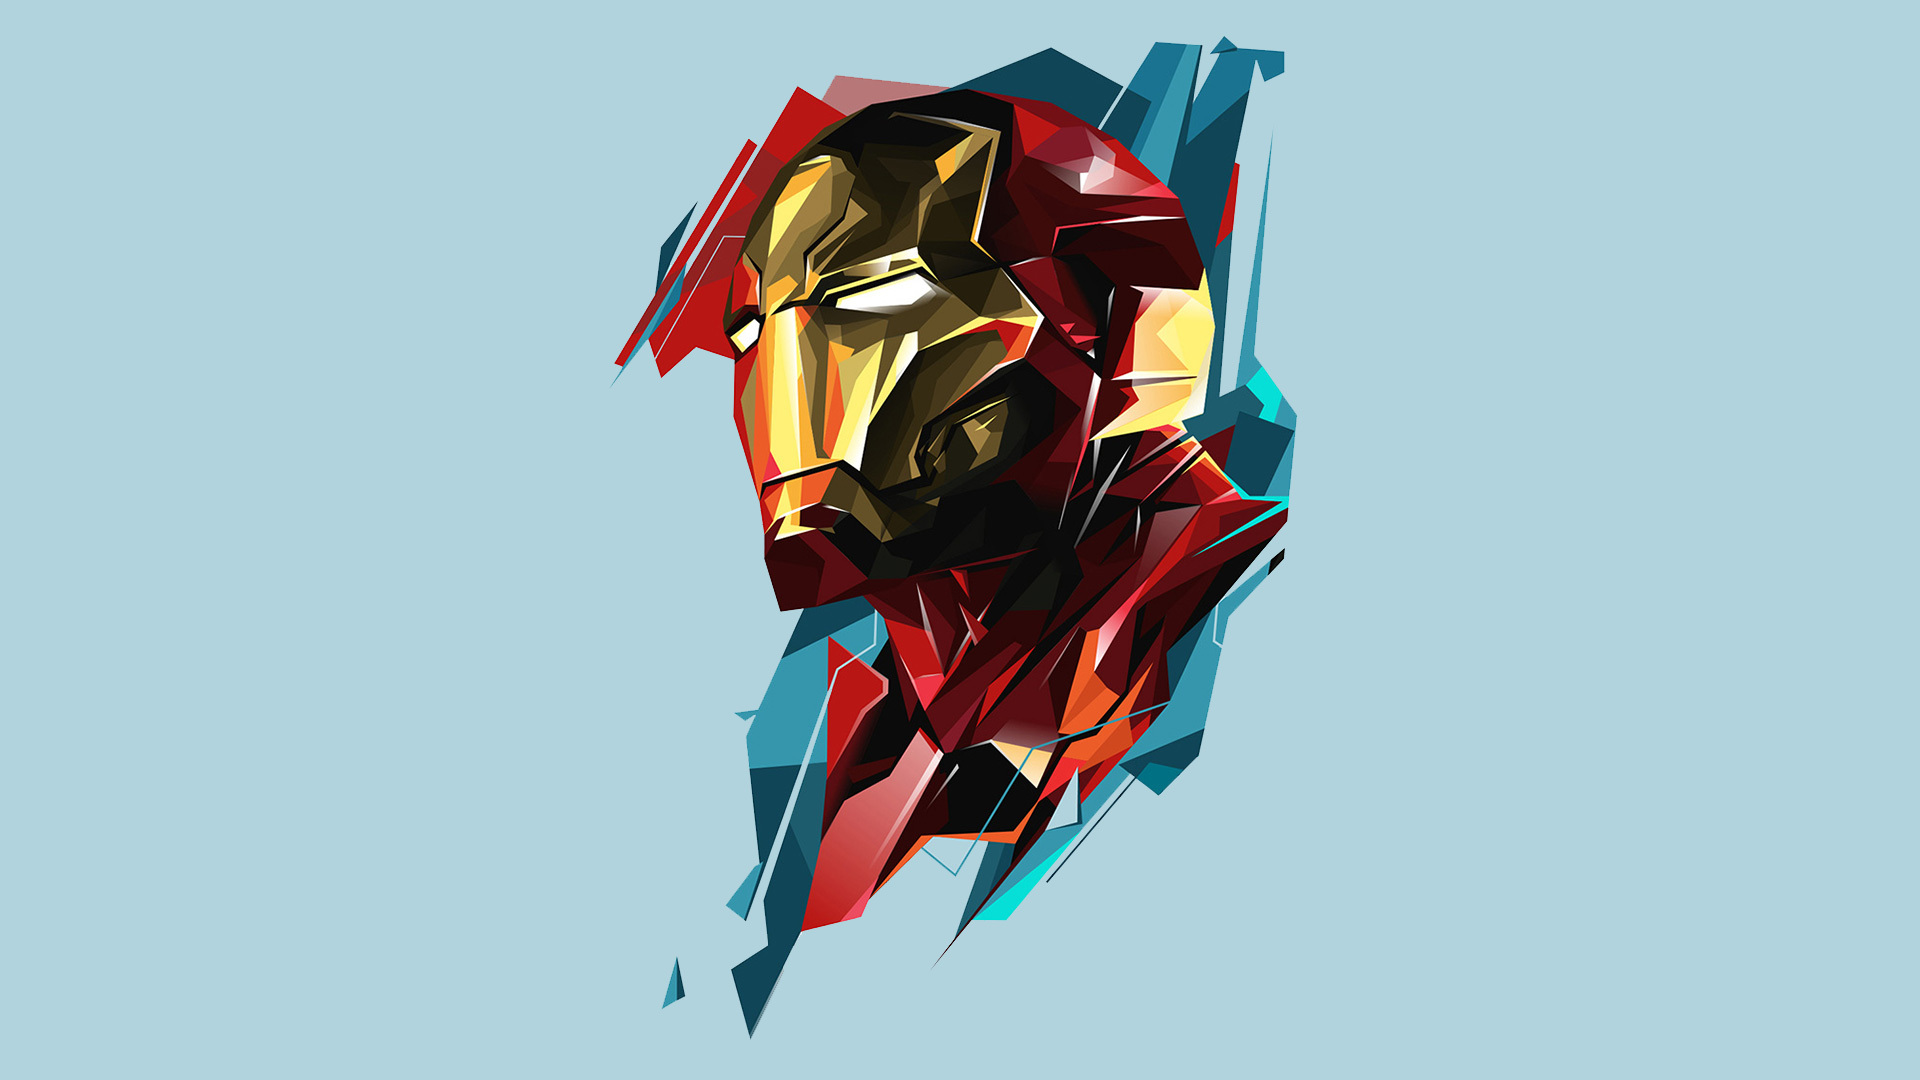 1920x1080 Iron Man Marvel Heroes Art Laptop Full HD 1080P ...